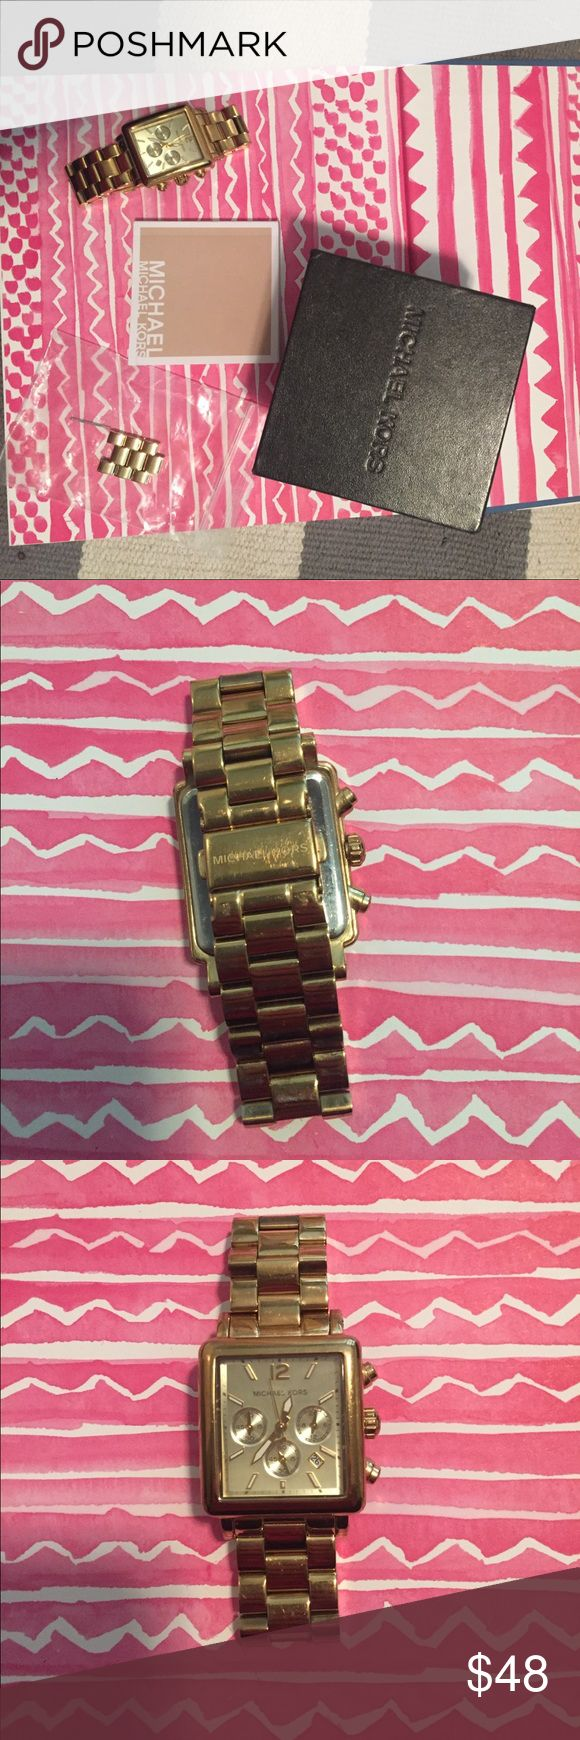 """Michael Kors Gold Square Watch Excellent used condition. Comes with all the original packaging-- booklet, box, additional link. Stylish oversized watch in """"gold."""" Very classic. Just needs a new battery. Michael Kors Accessories Watches"""